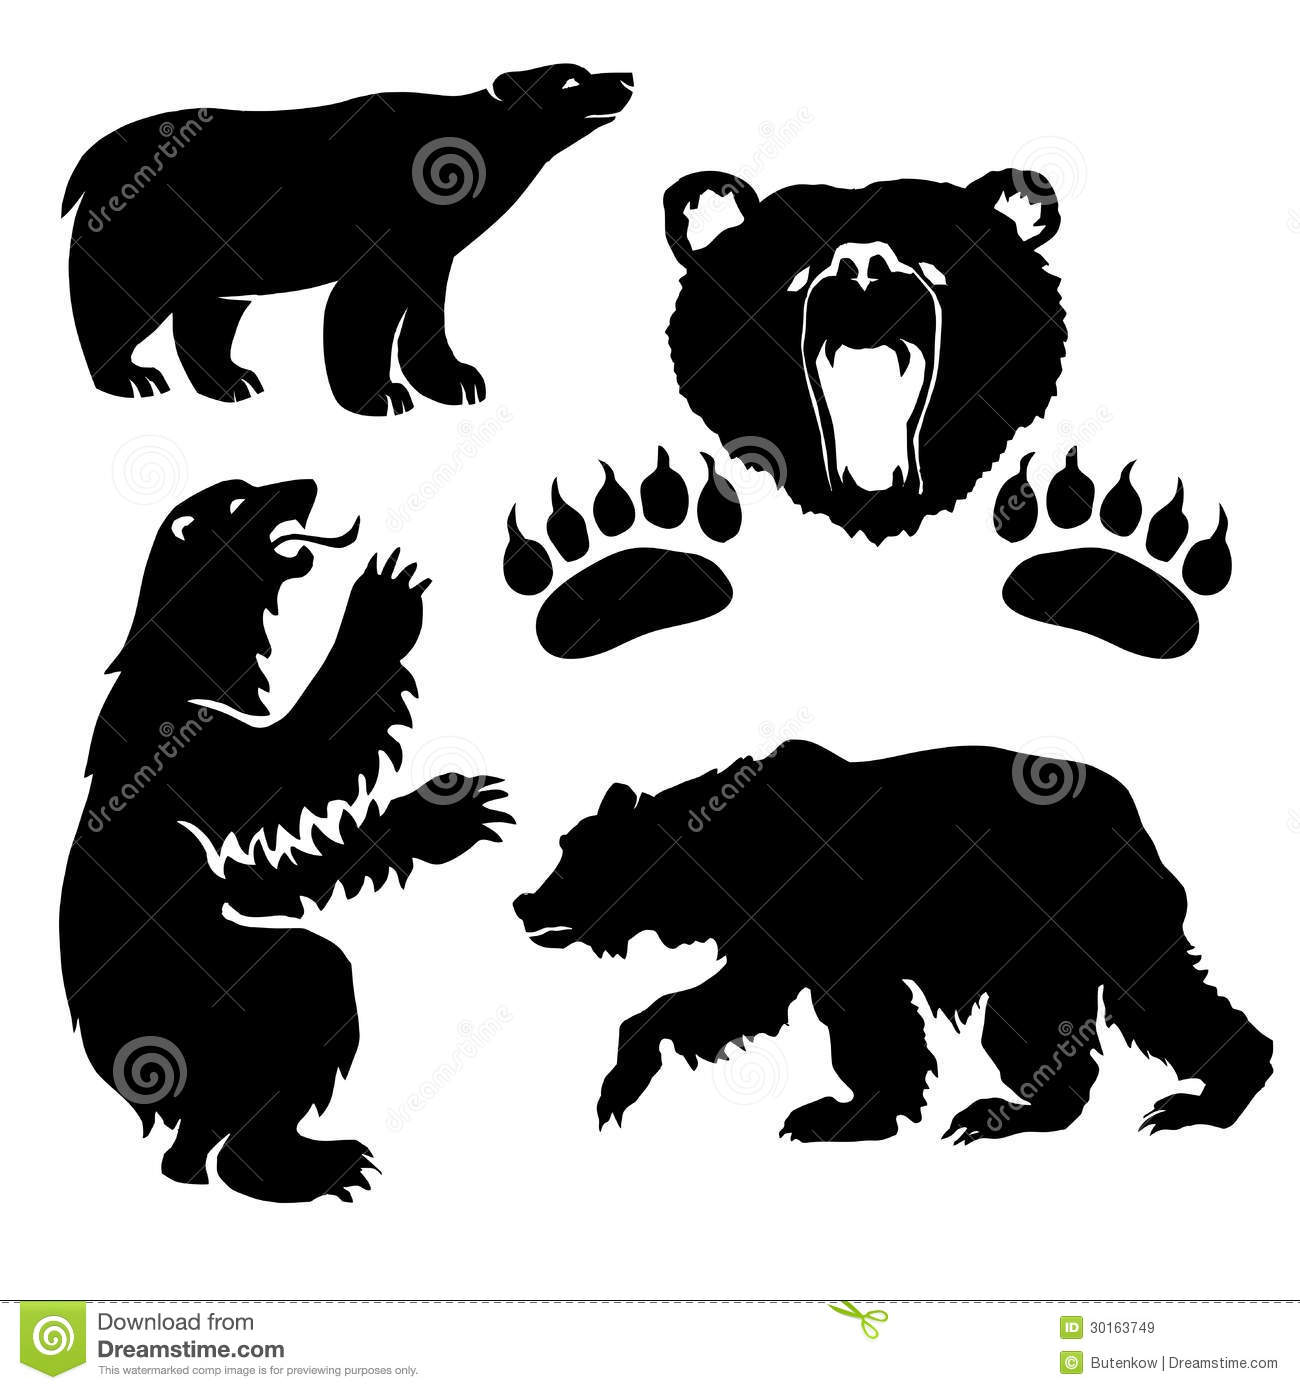 video jaguar paw download with Royalty Free Stock Images Collection Black Silhouette Bear Heraldry Image30163749 on Clipart Wildcat Paw Golden 1 likewise Royalty Free Stock Images Collection Black Silhouette Bear Heraldry Image30163749 further Stock Photo Jaguar Head Image26562450 besides Panther Paws besides Dog Paw Outline.